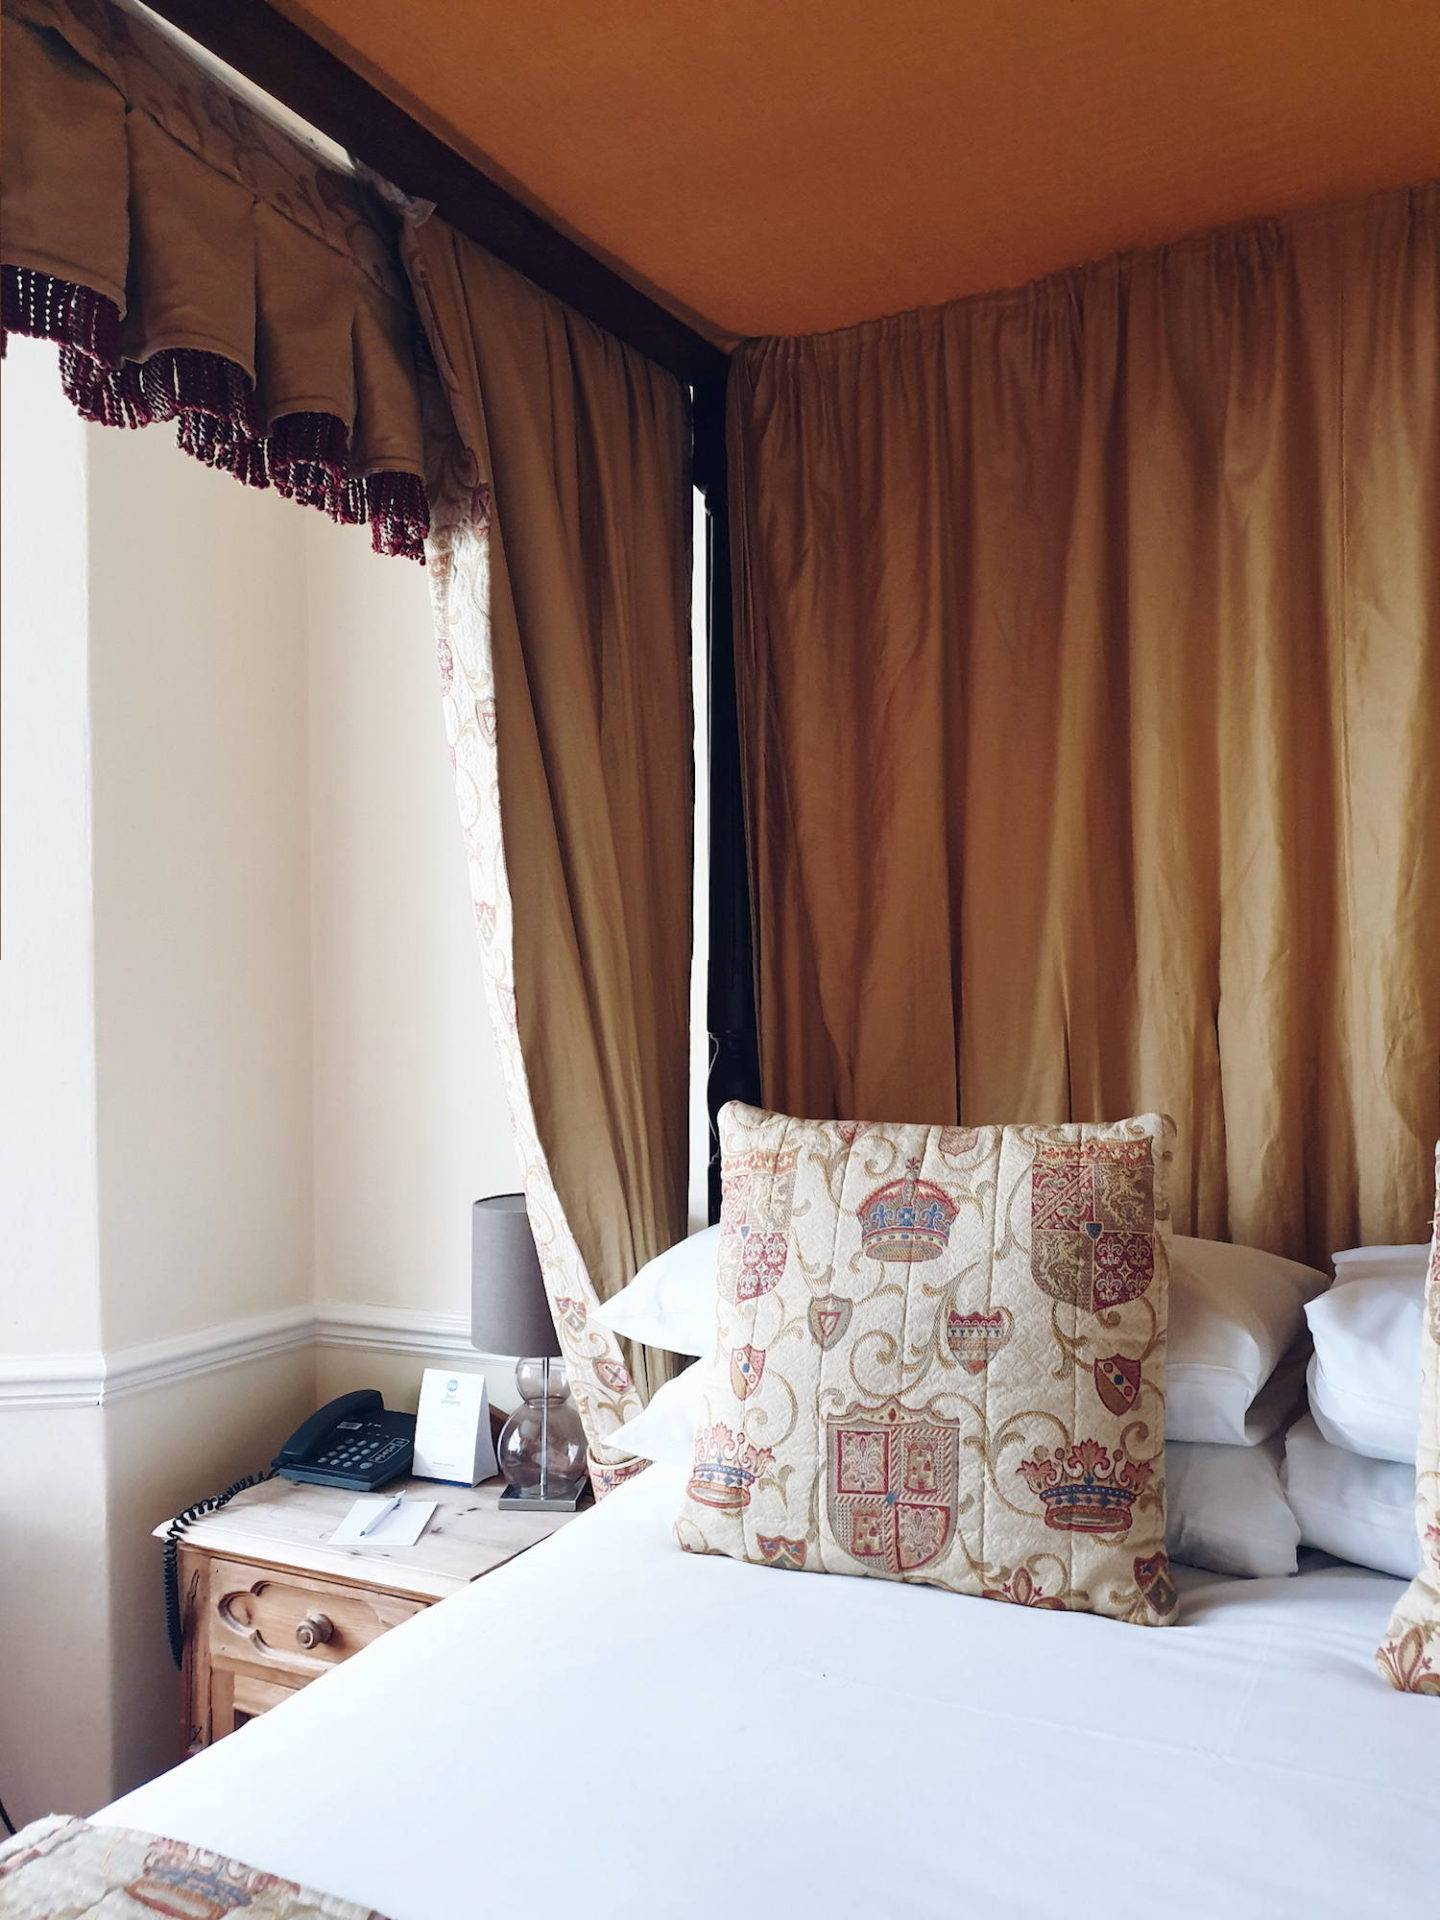 Luxury hotel in North East England: Walworth Castle review